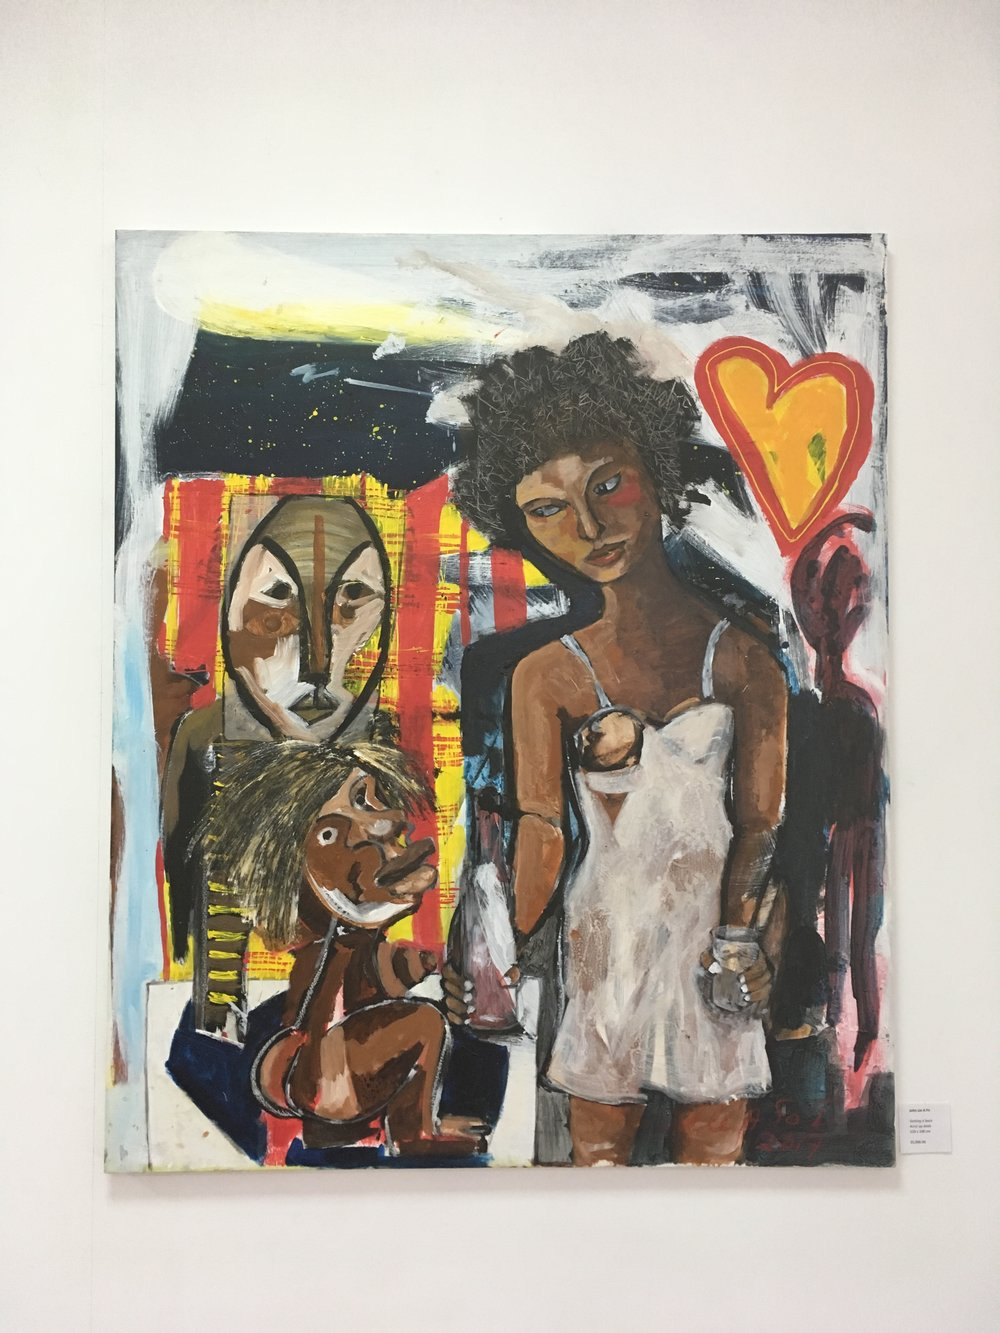 Images from French Guyana-based Surinamese artist John Lie A Fo's Retrospective, which was being exhibited at Readytex while I was in Suriname.